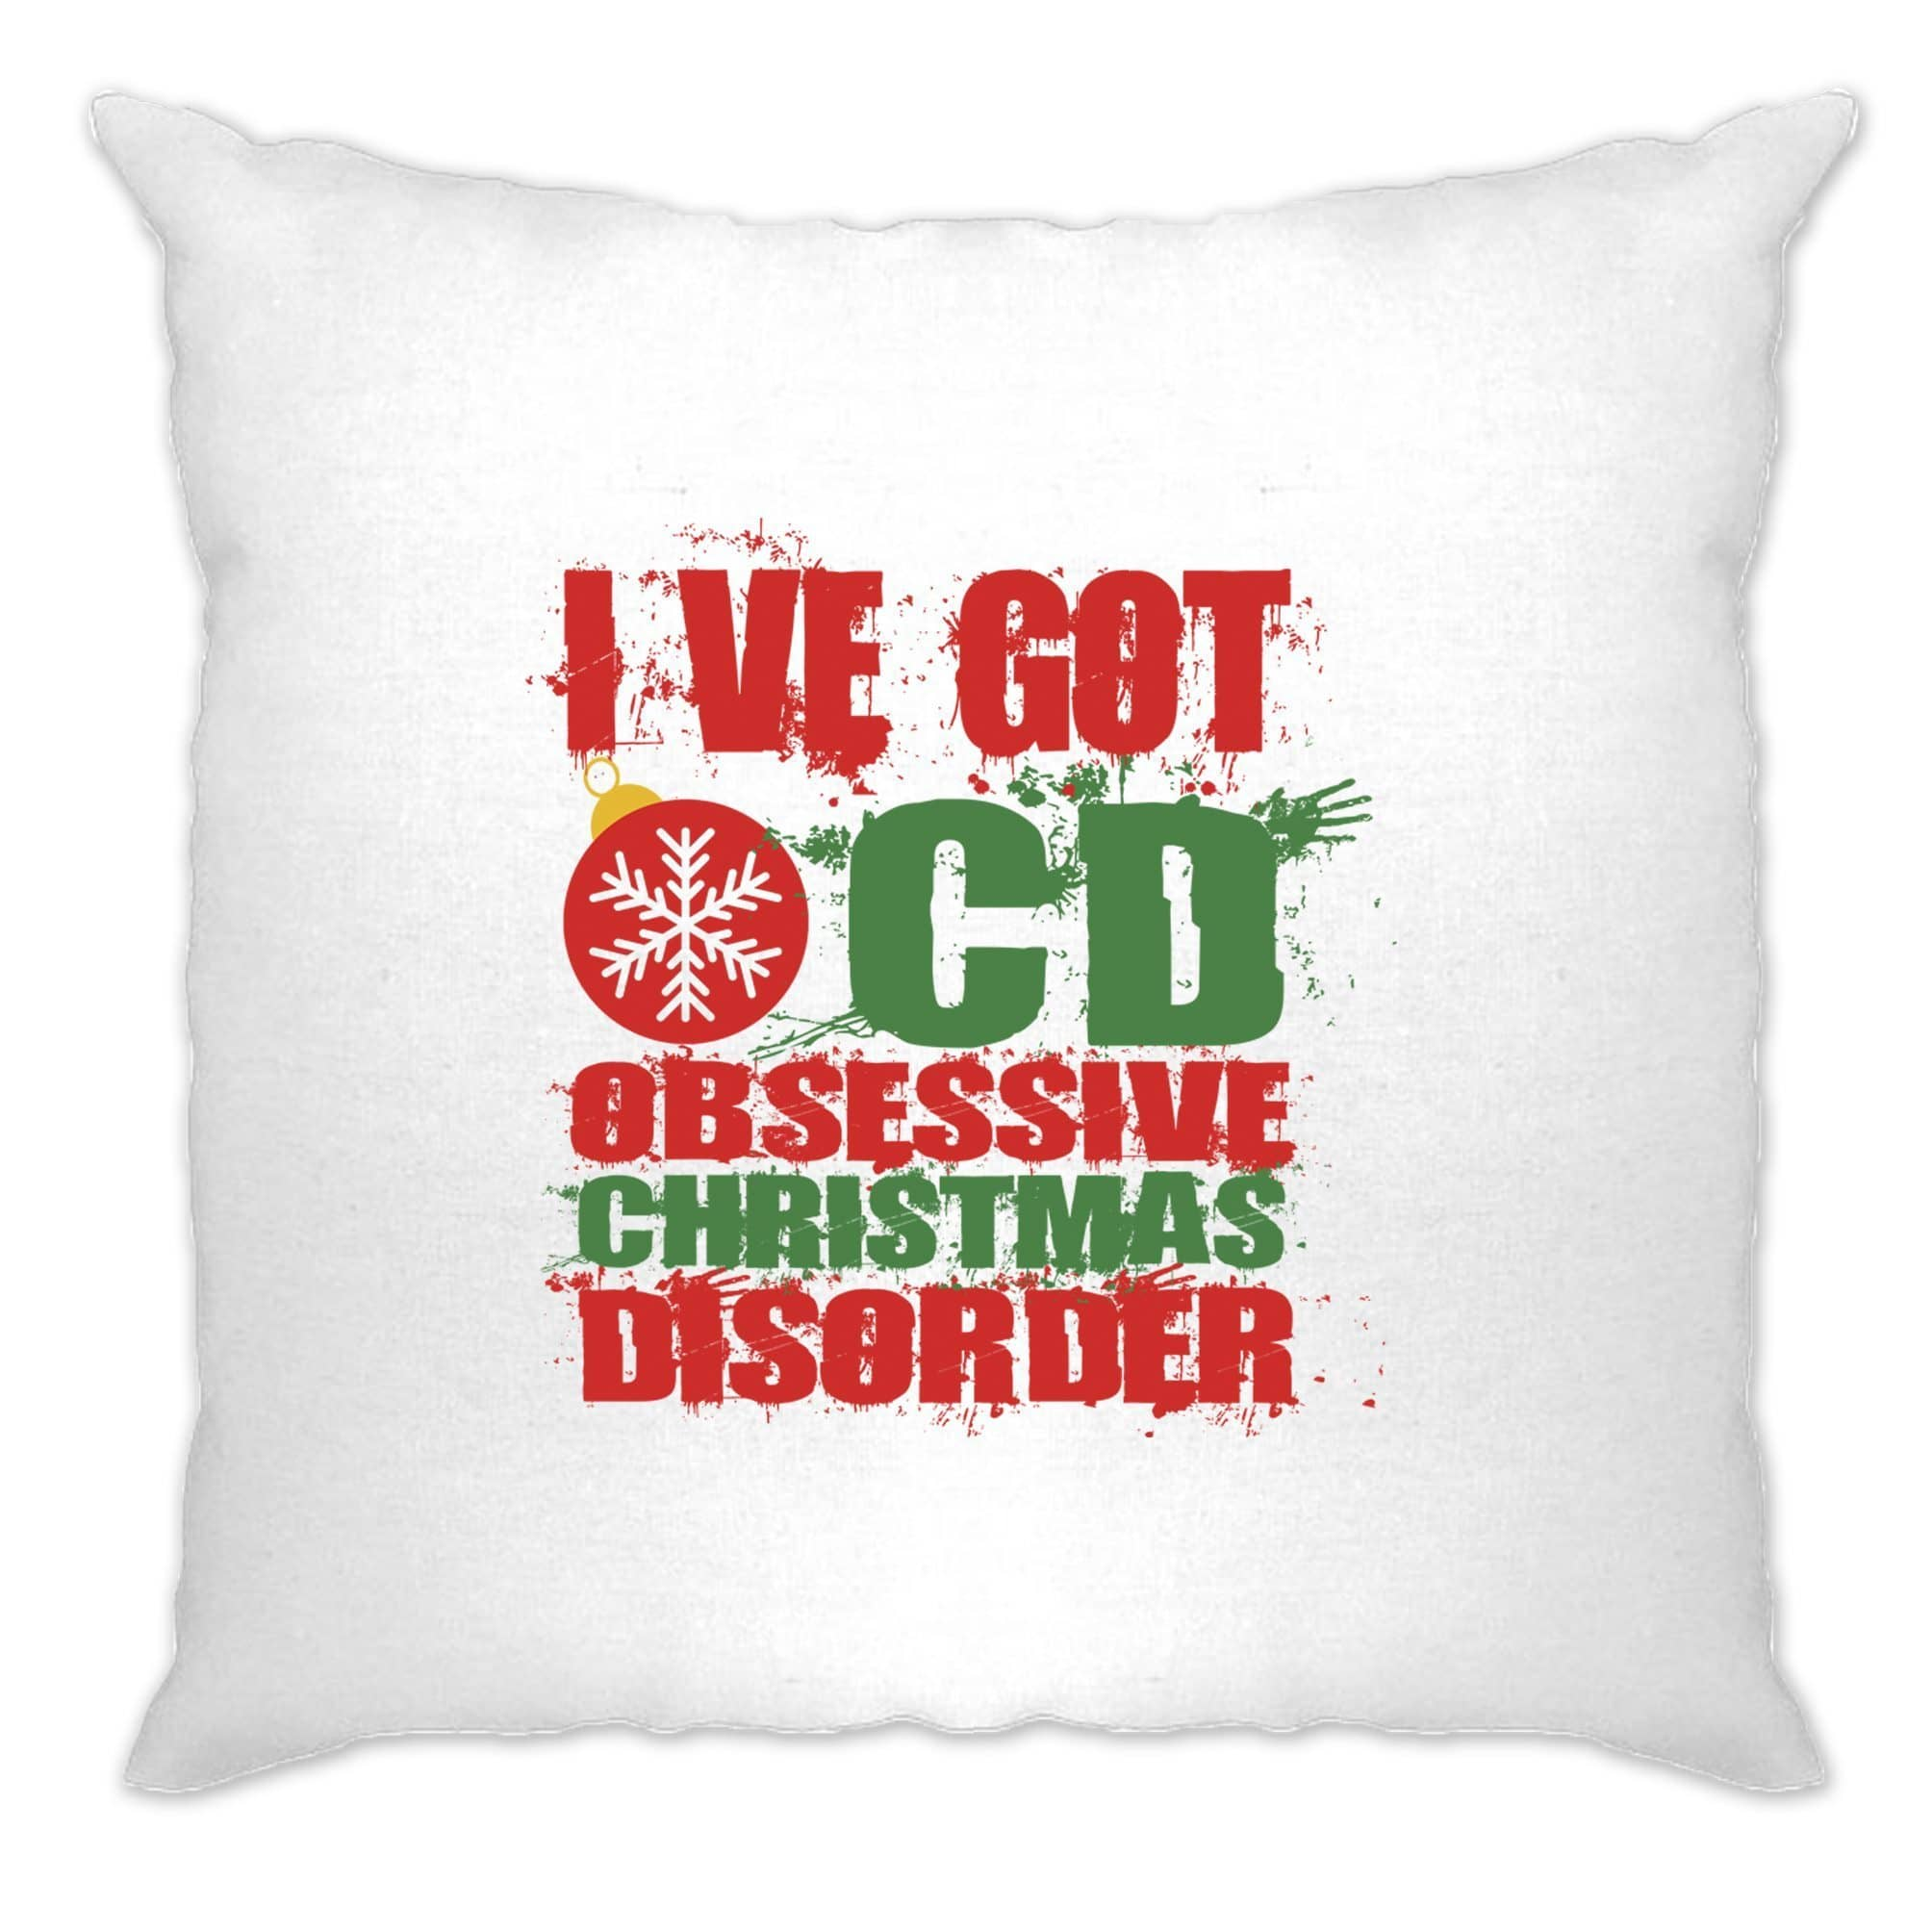 Christmas Cushion Cover Obsessive Xmas Disorder OCD Joke